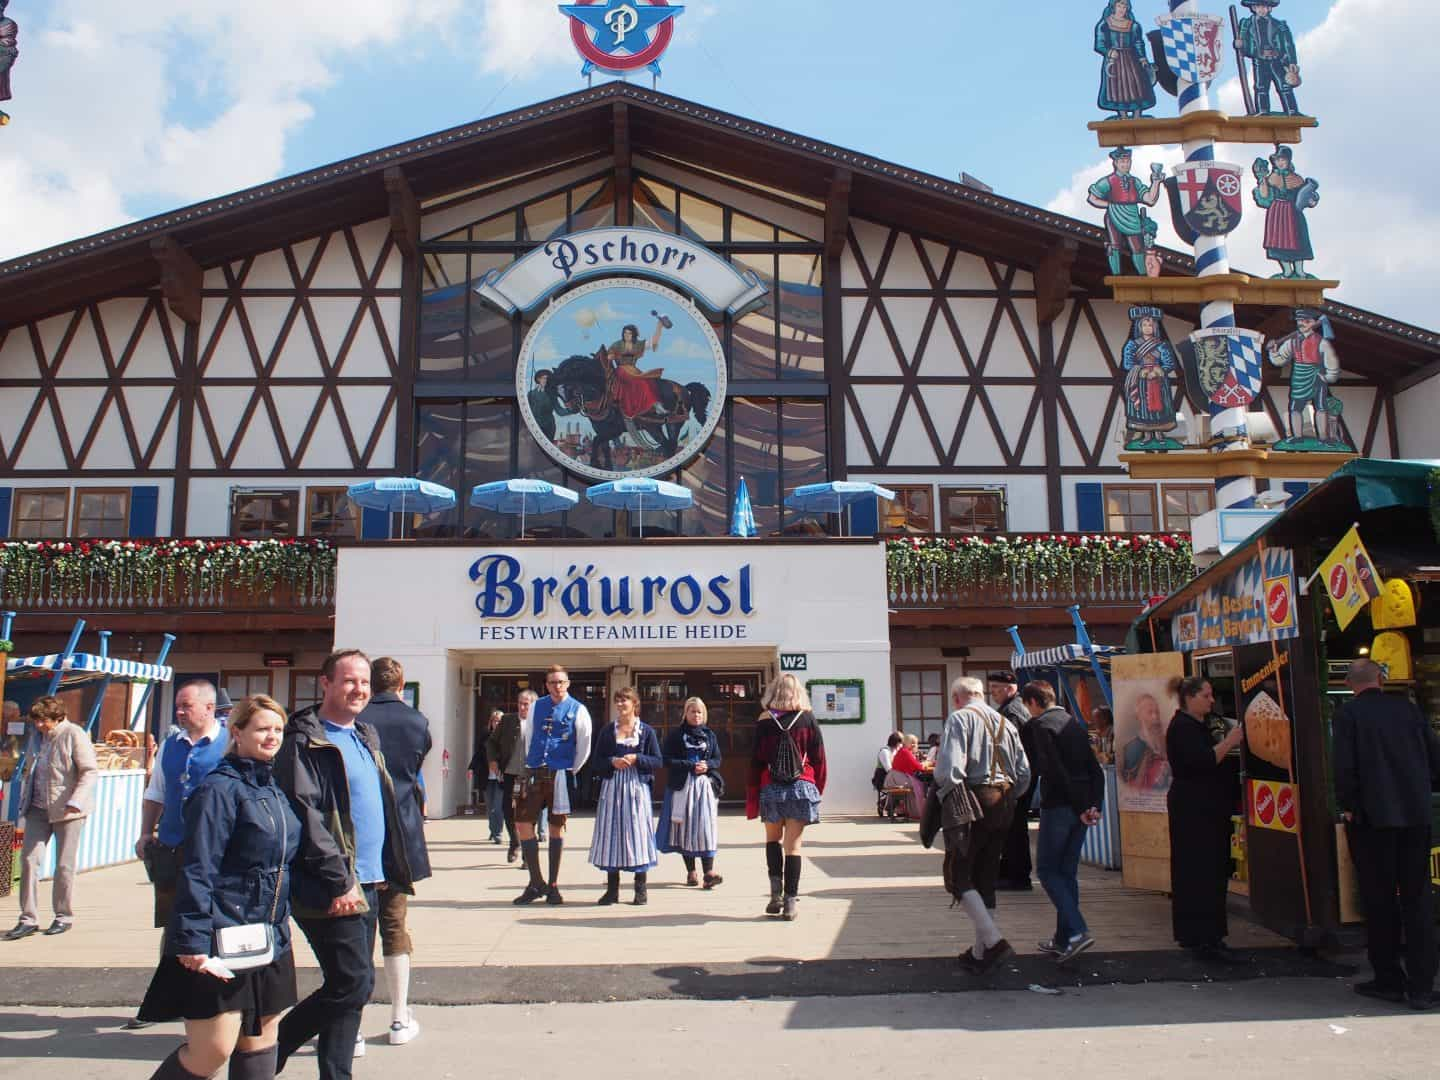 Braurosl beer tent at Munich Oktoberfest